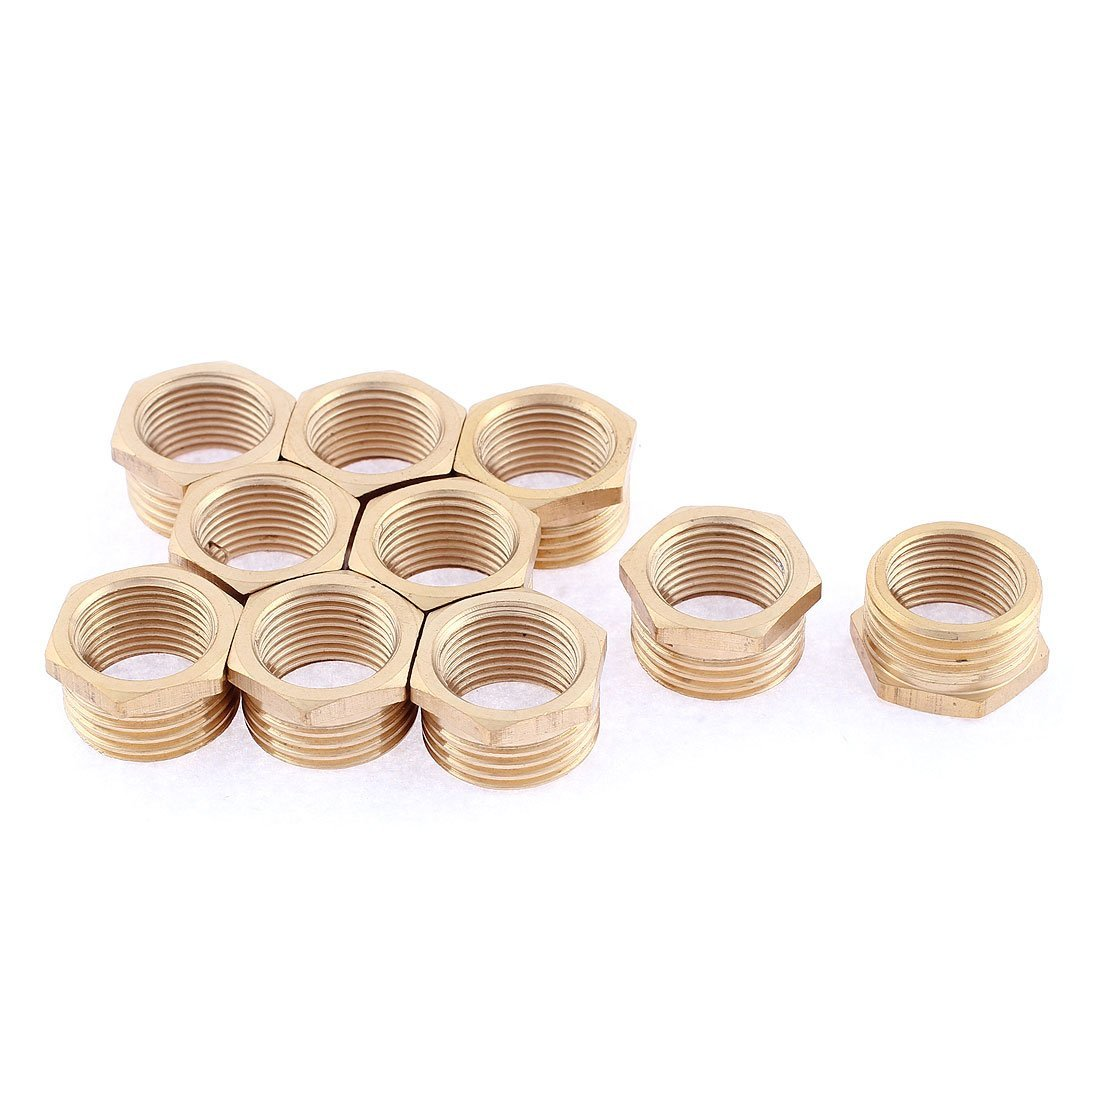 1//2BSP Female to 1//2BSP Male Hex Thread Bushing Piping Adapter Pipe Fitting 2pcs